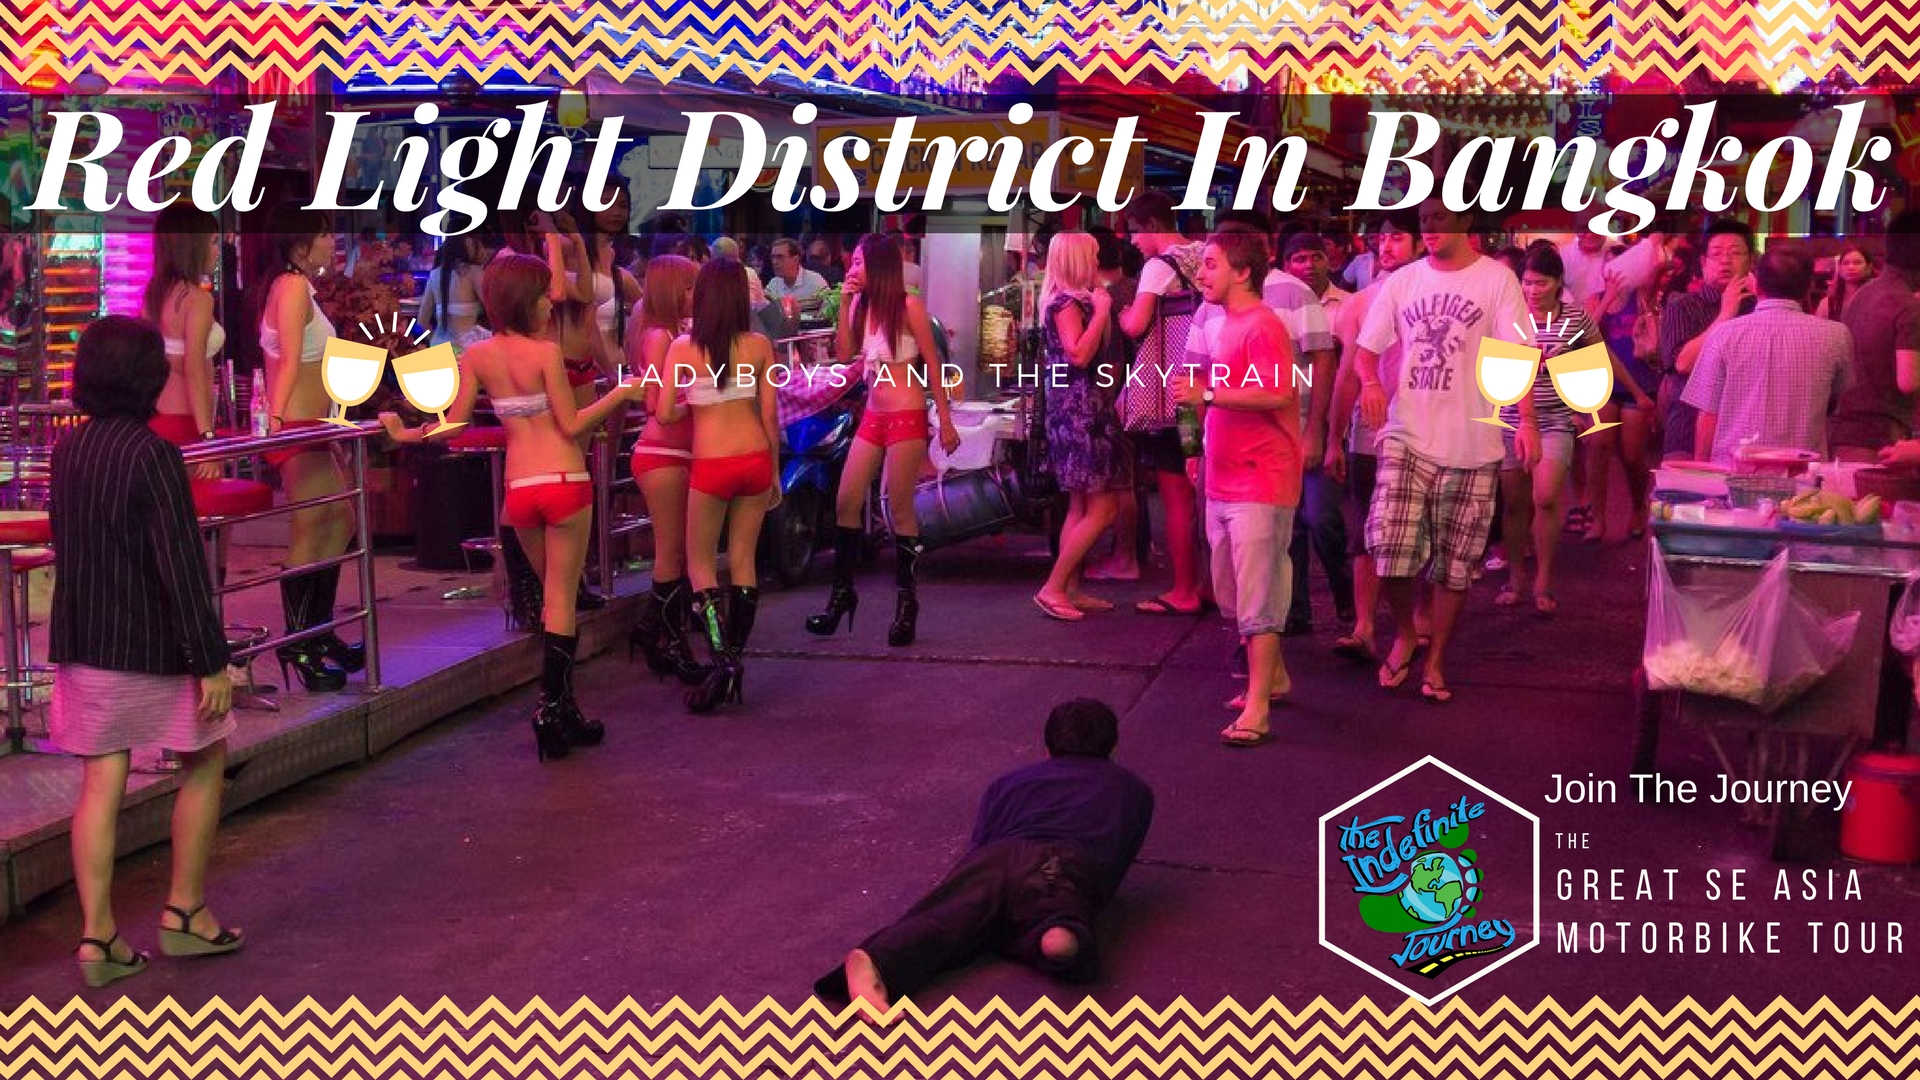 Red Light District In Bangkok, LadyBoys And The SkyTrain